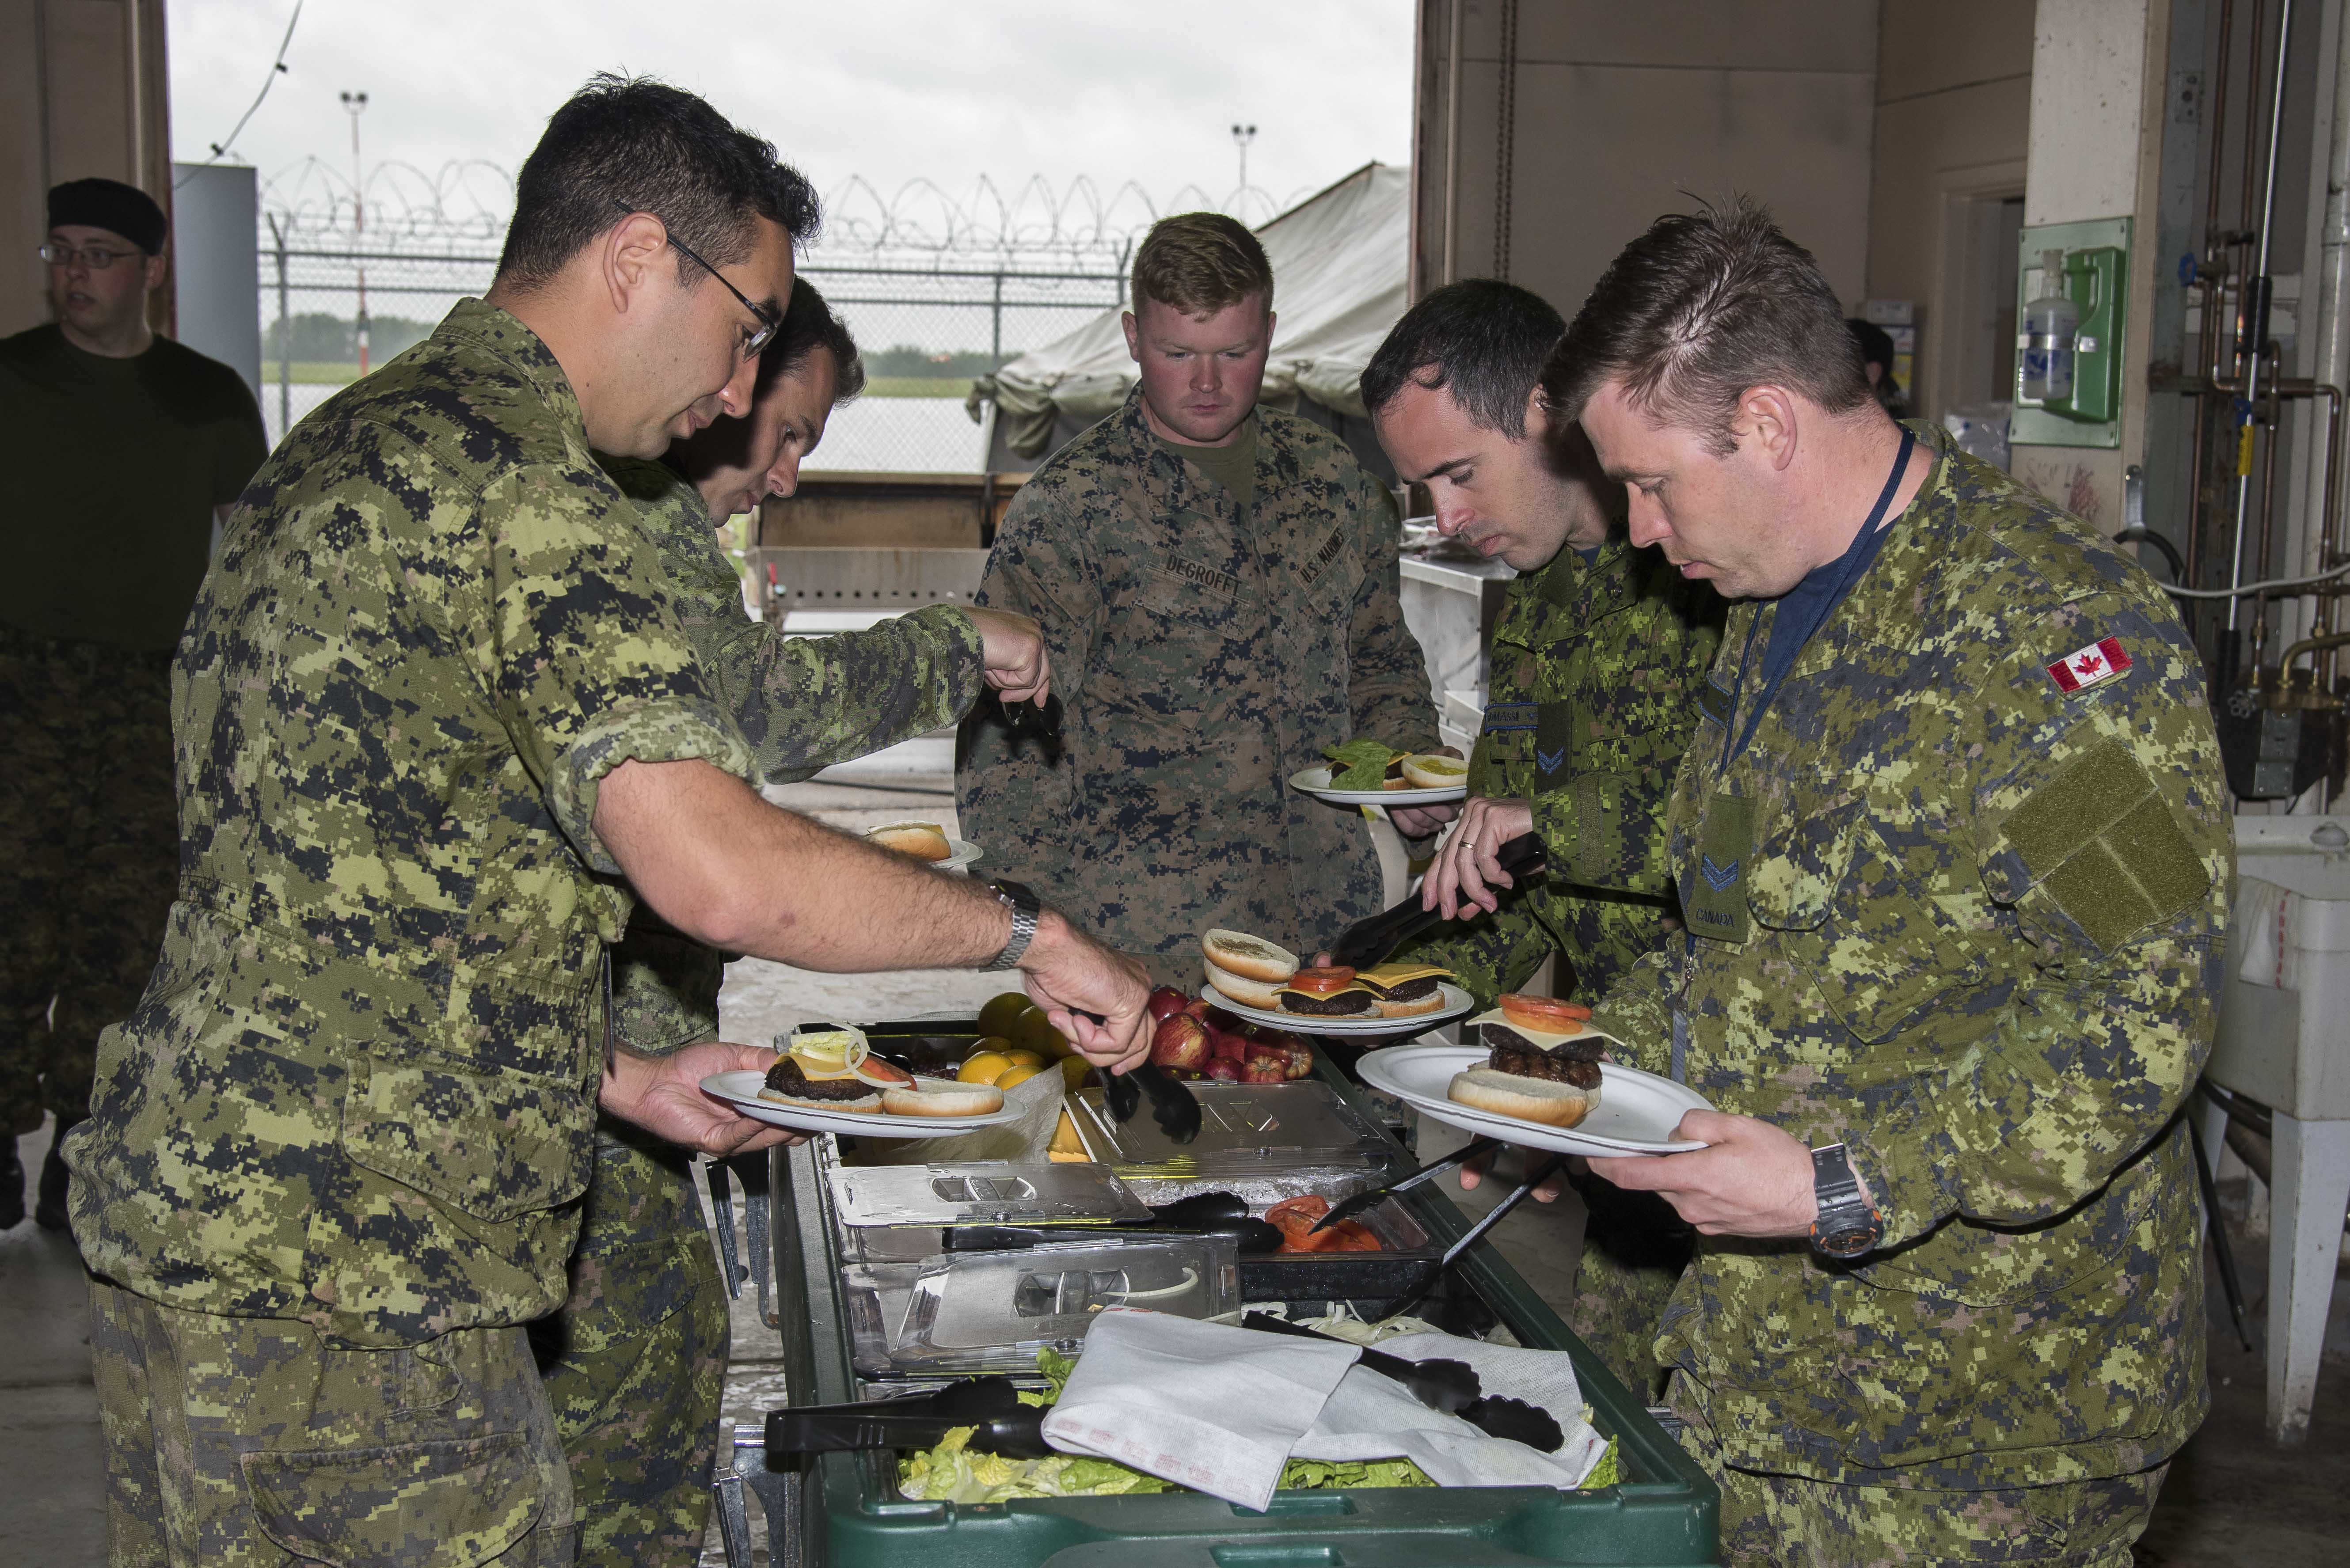 Exercise Maple Flag 50 participants assemble their hamburgers for lunch at the satellite kitchen on June 5, 2017. PHOTO: Corporal Justin Roy, CK07-2017-0464-003